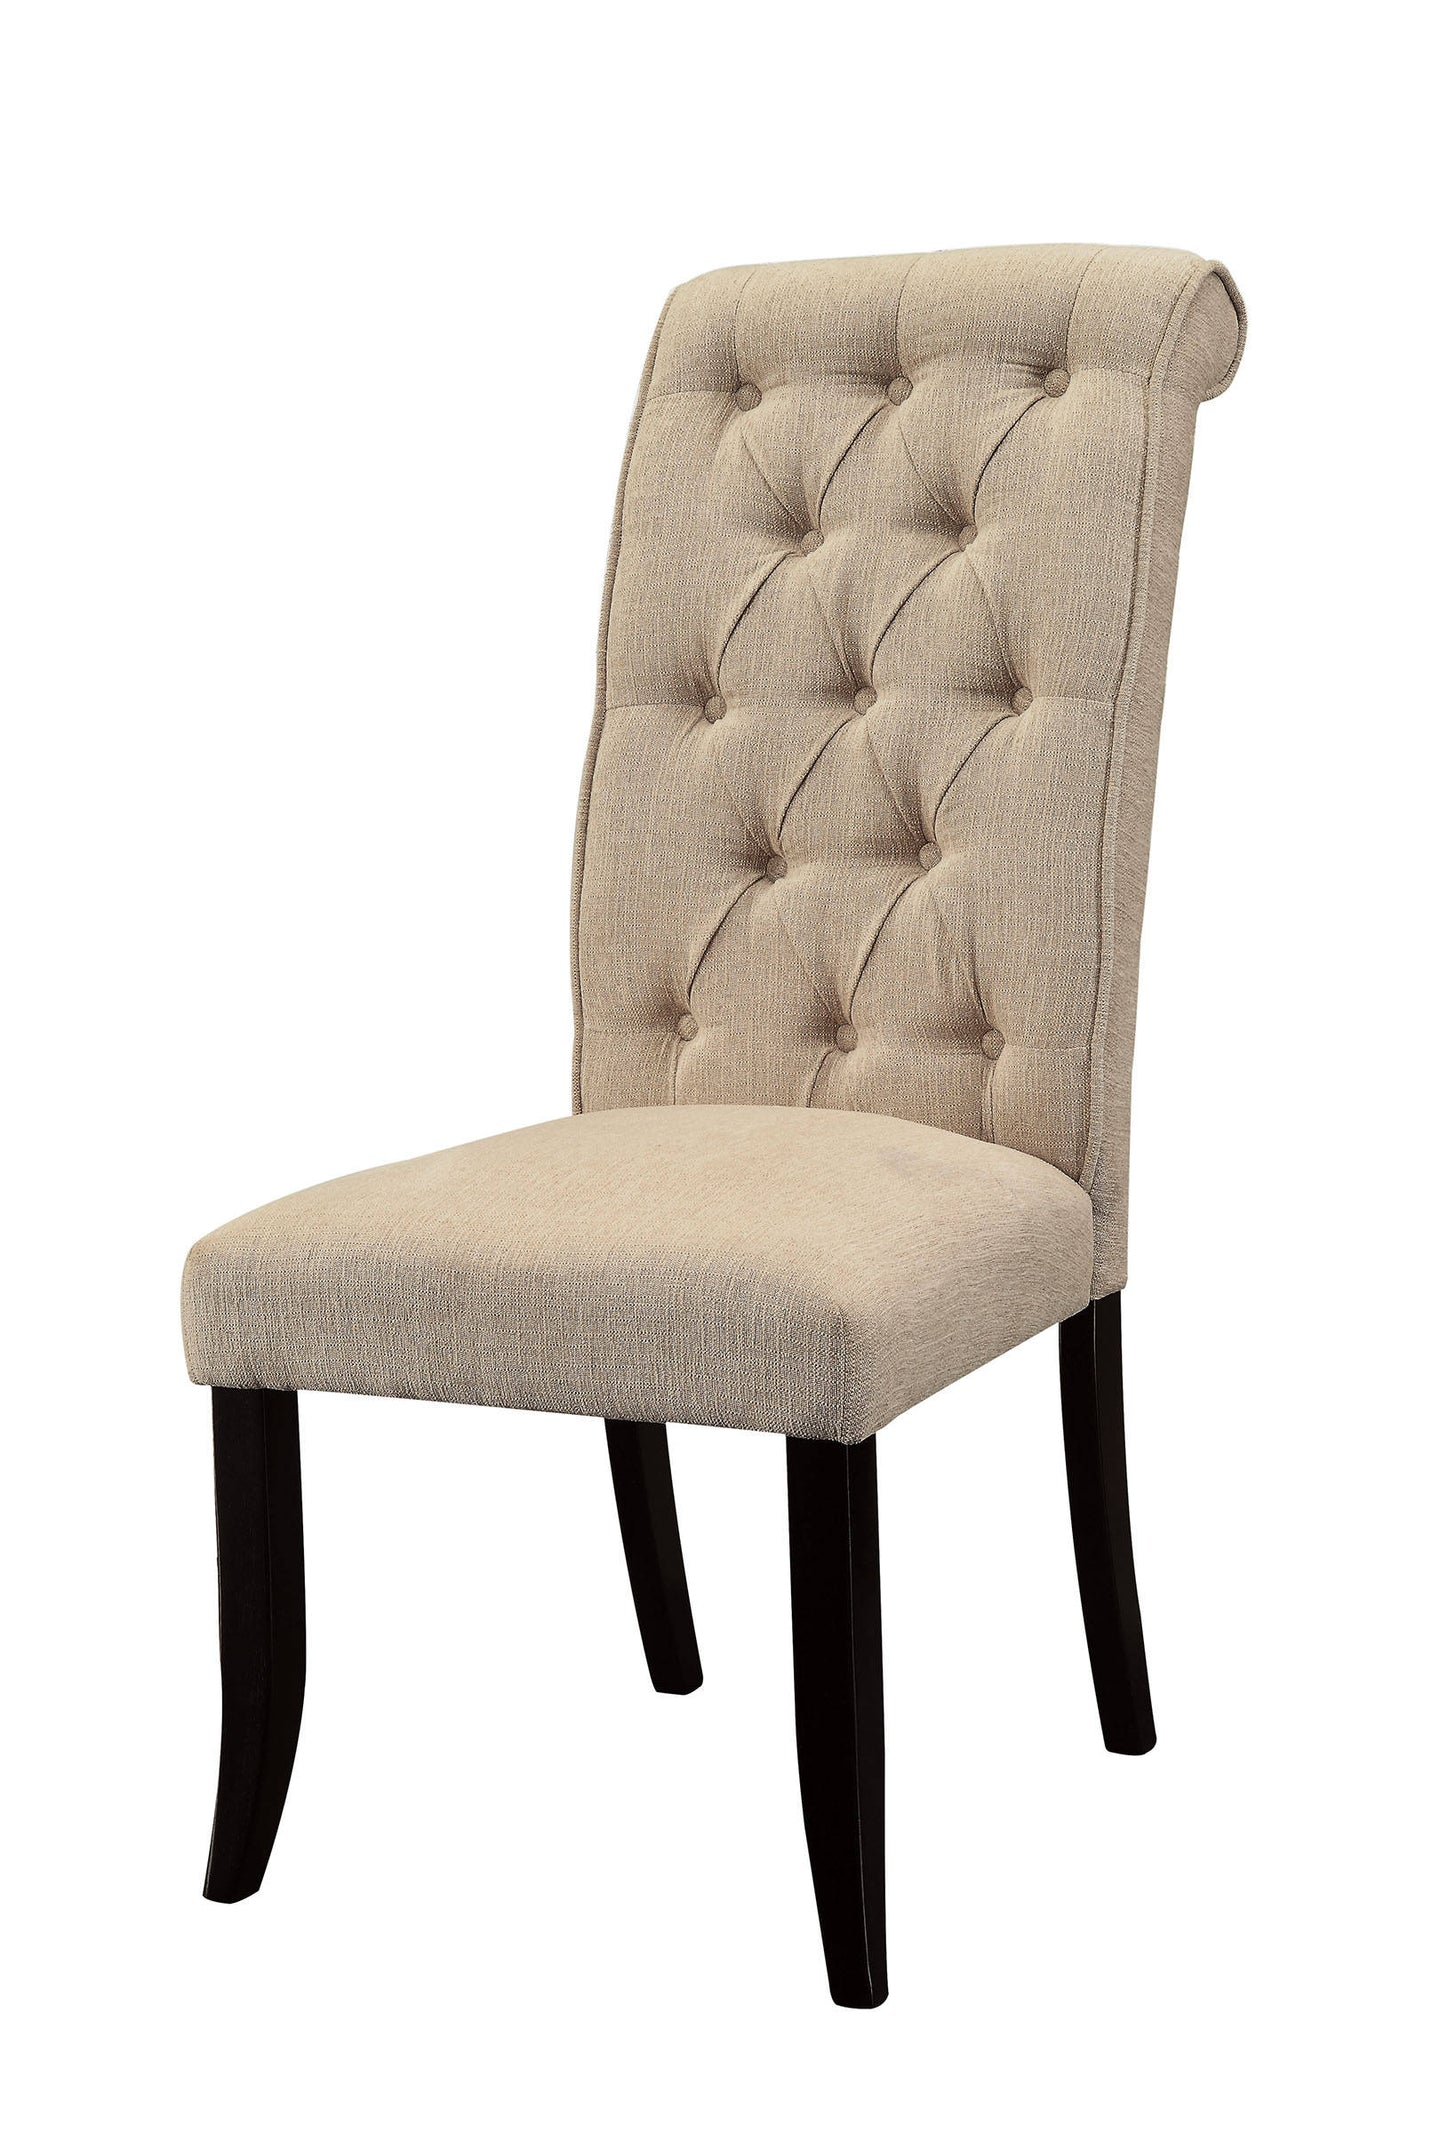 Marshall CM3564SC Transitional Ivory Fabric Wood Side Chair